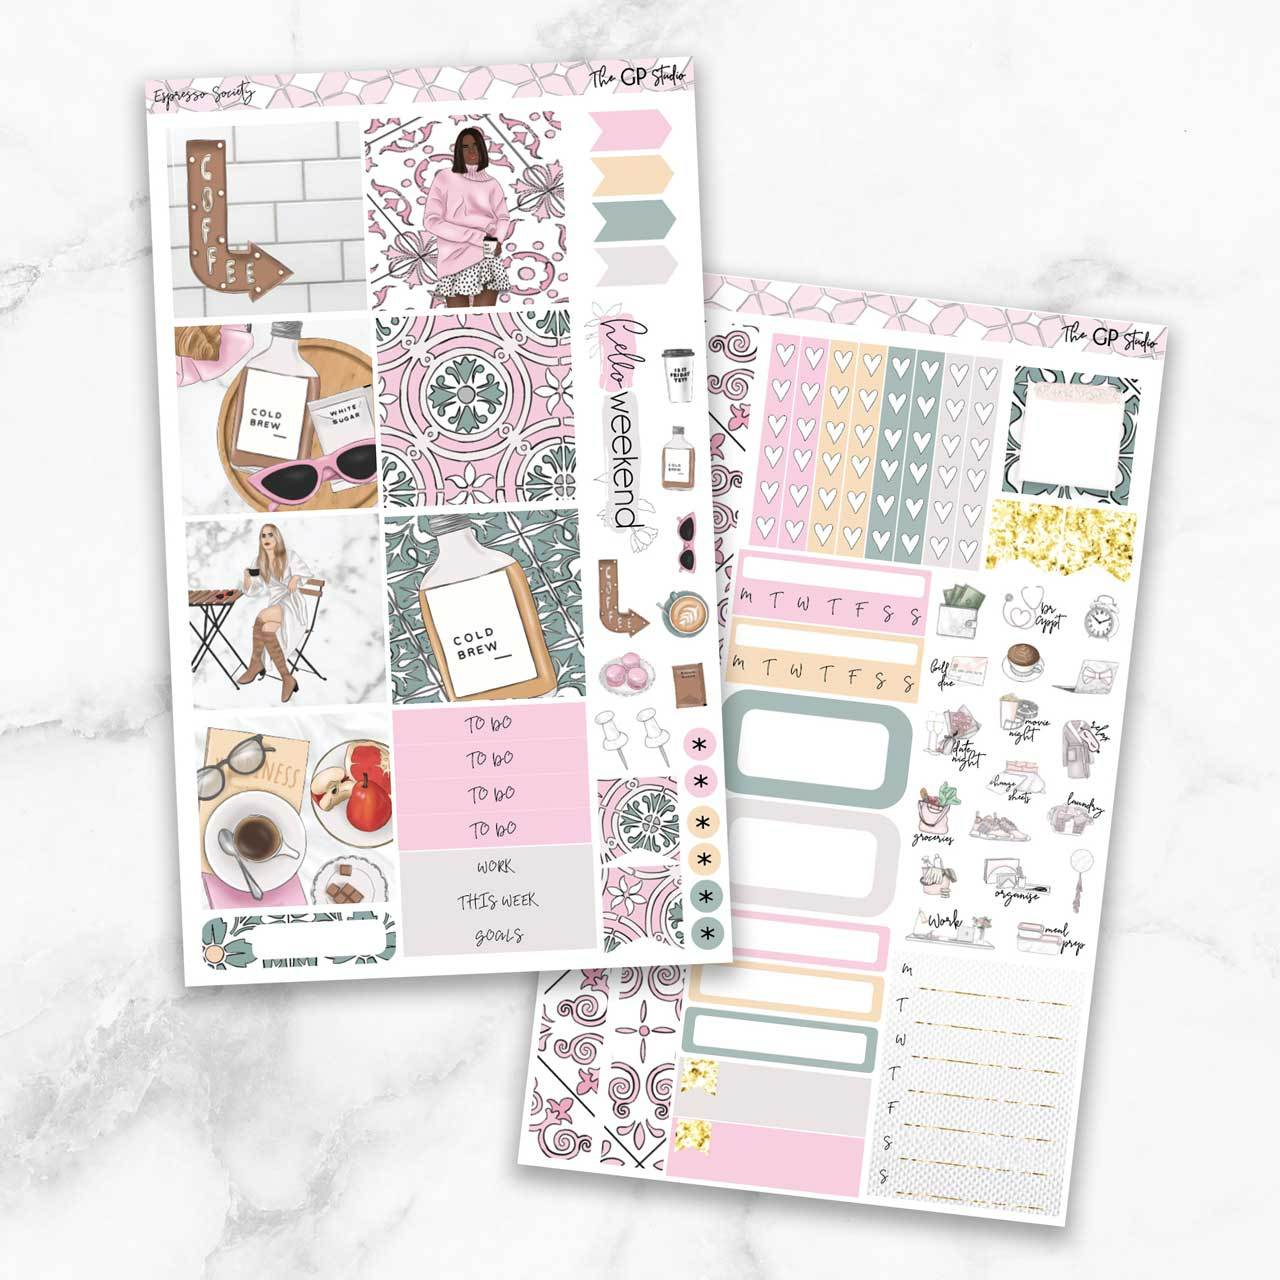 ESPRESSO SOCIETY Mini Size Planner Sticker Kit-The GP Studio